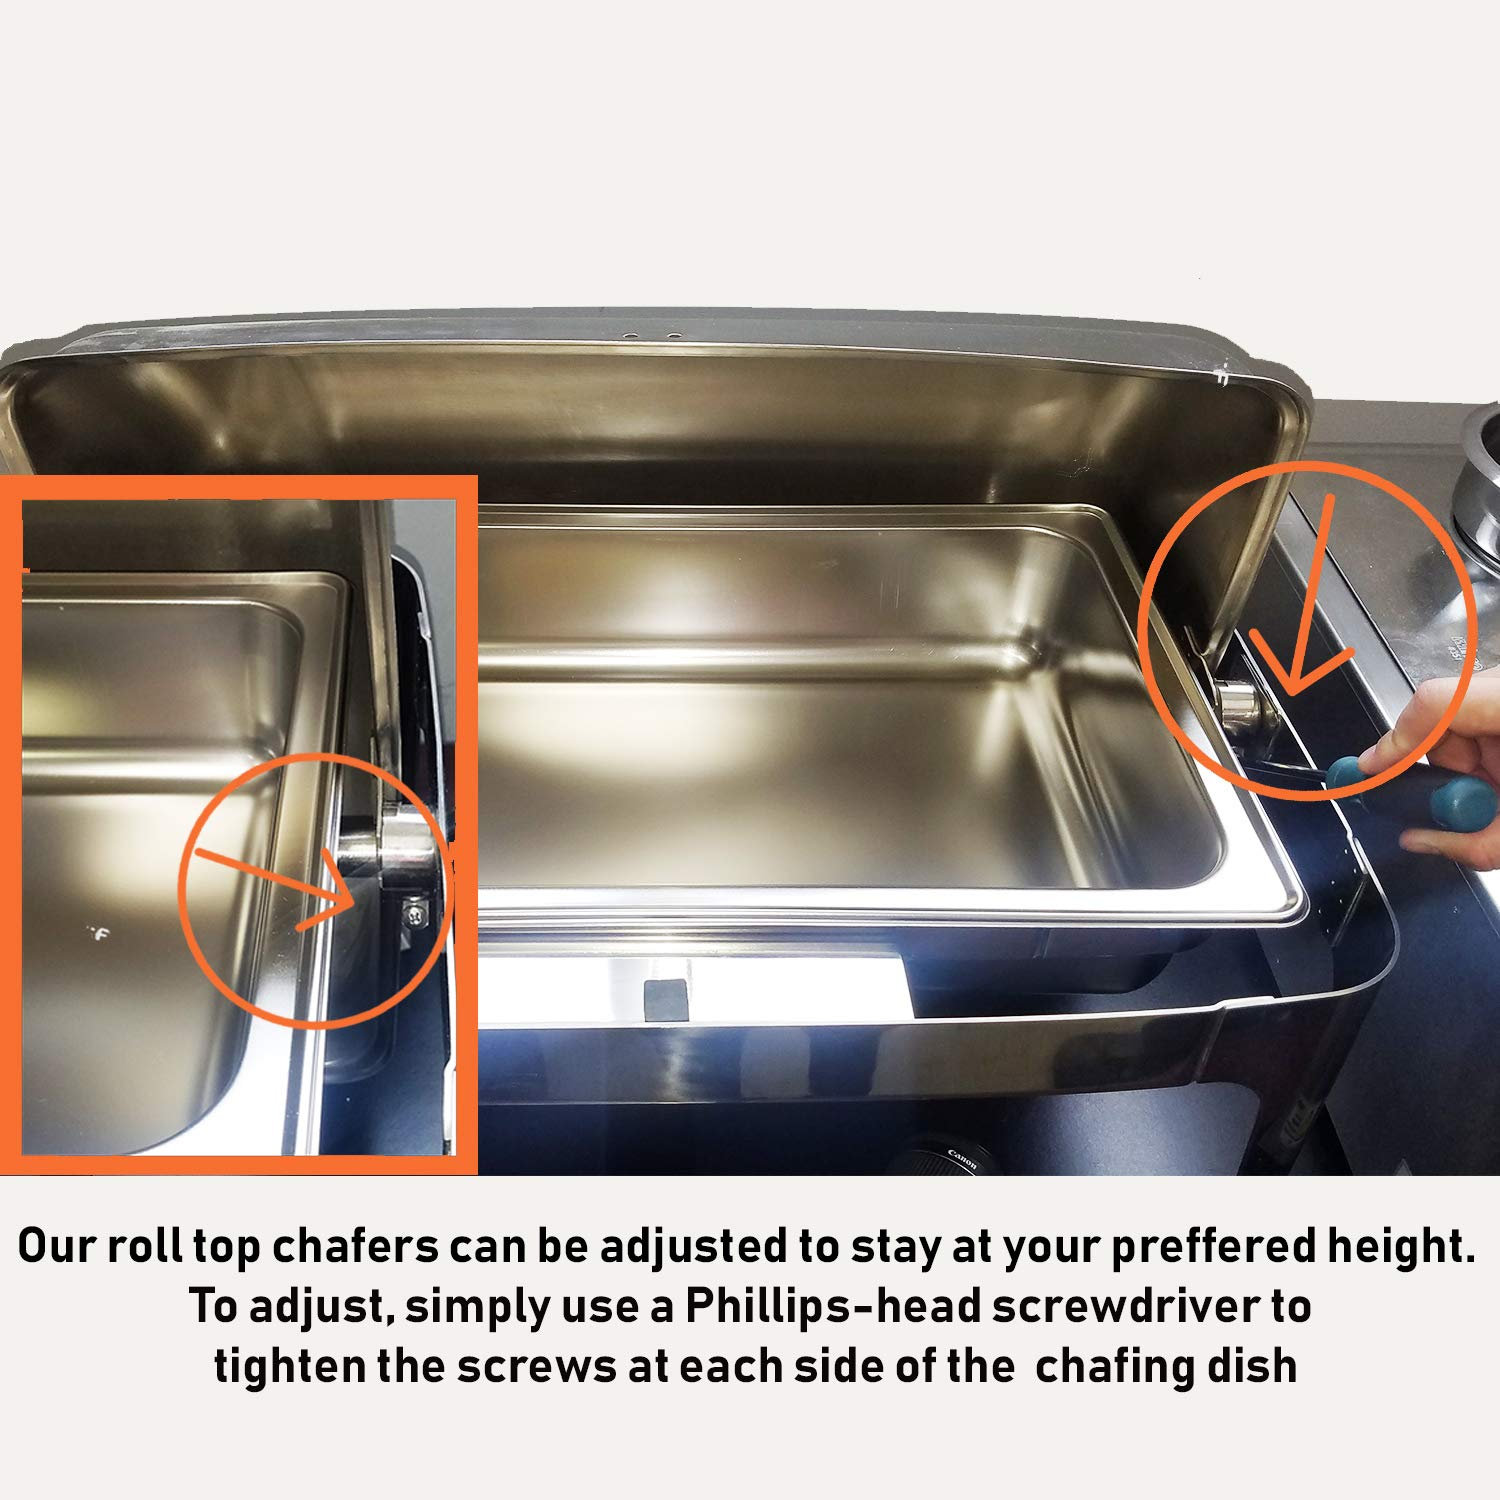 Tiger Chef 6 Quart Stainless Steel Round Roll Top Chafer, Chafing Dish Set With 3 Serving Tongs And 6 Chafing Dish Fuel Gels Burns 2.5 Hours